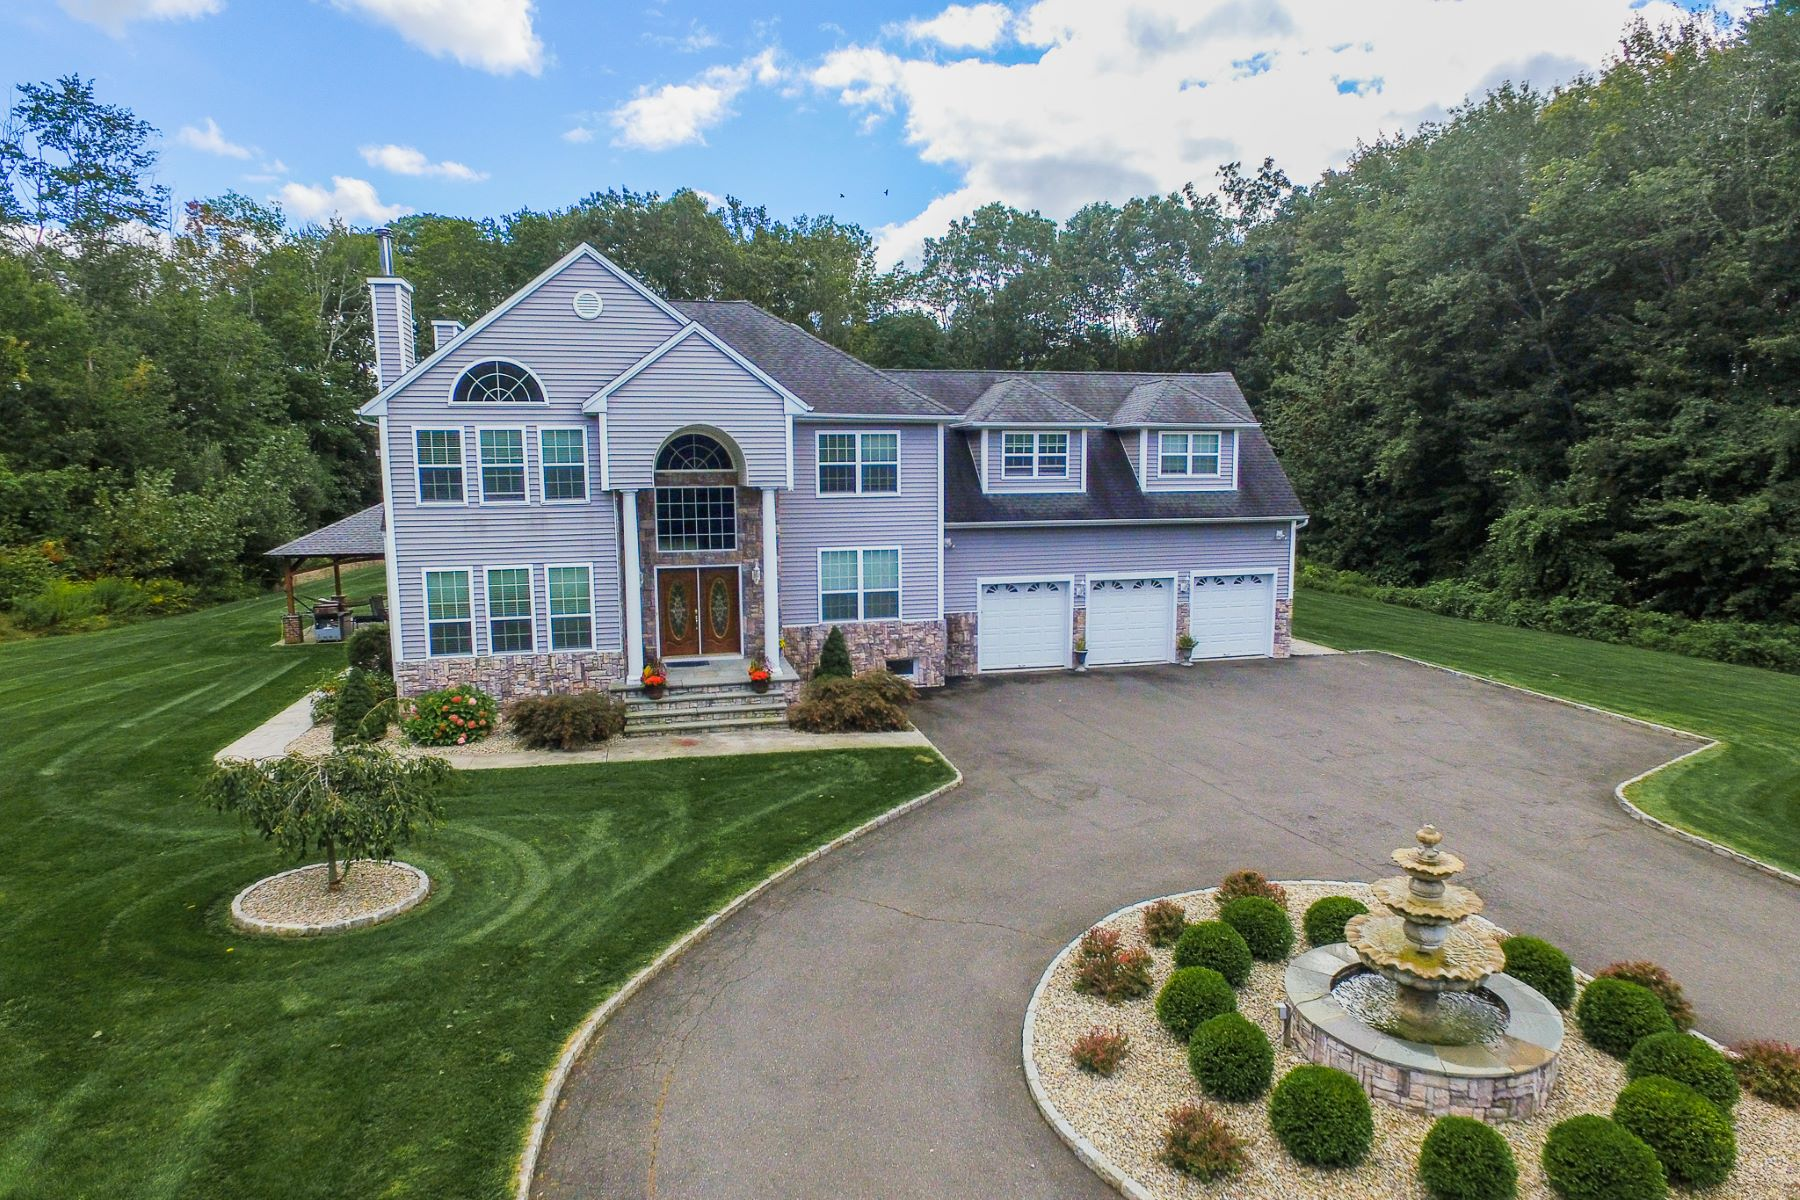 Single Family Home for Sale at Private And Tranquil Custom Colonial 14 Indian Spring Road Danbury, Connecticut 06811 United States